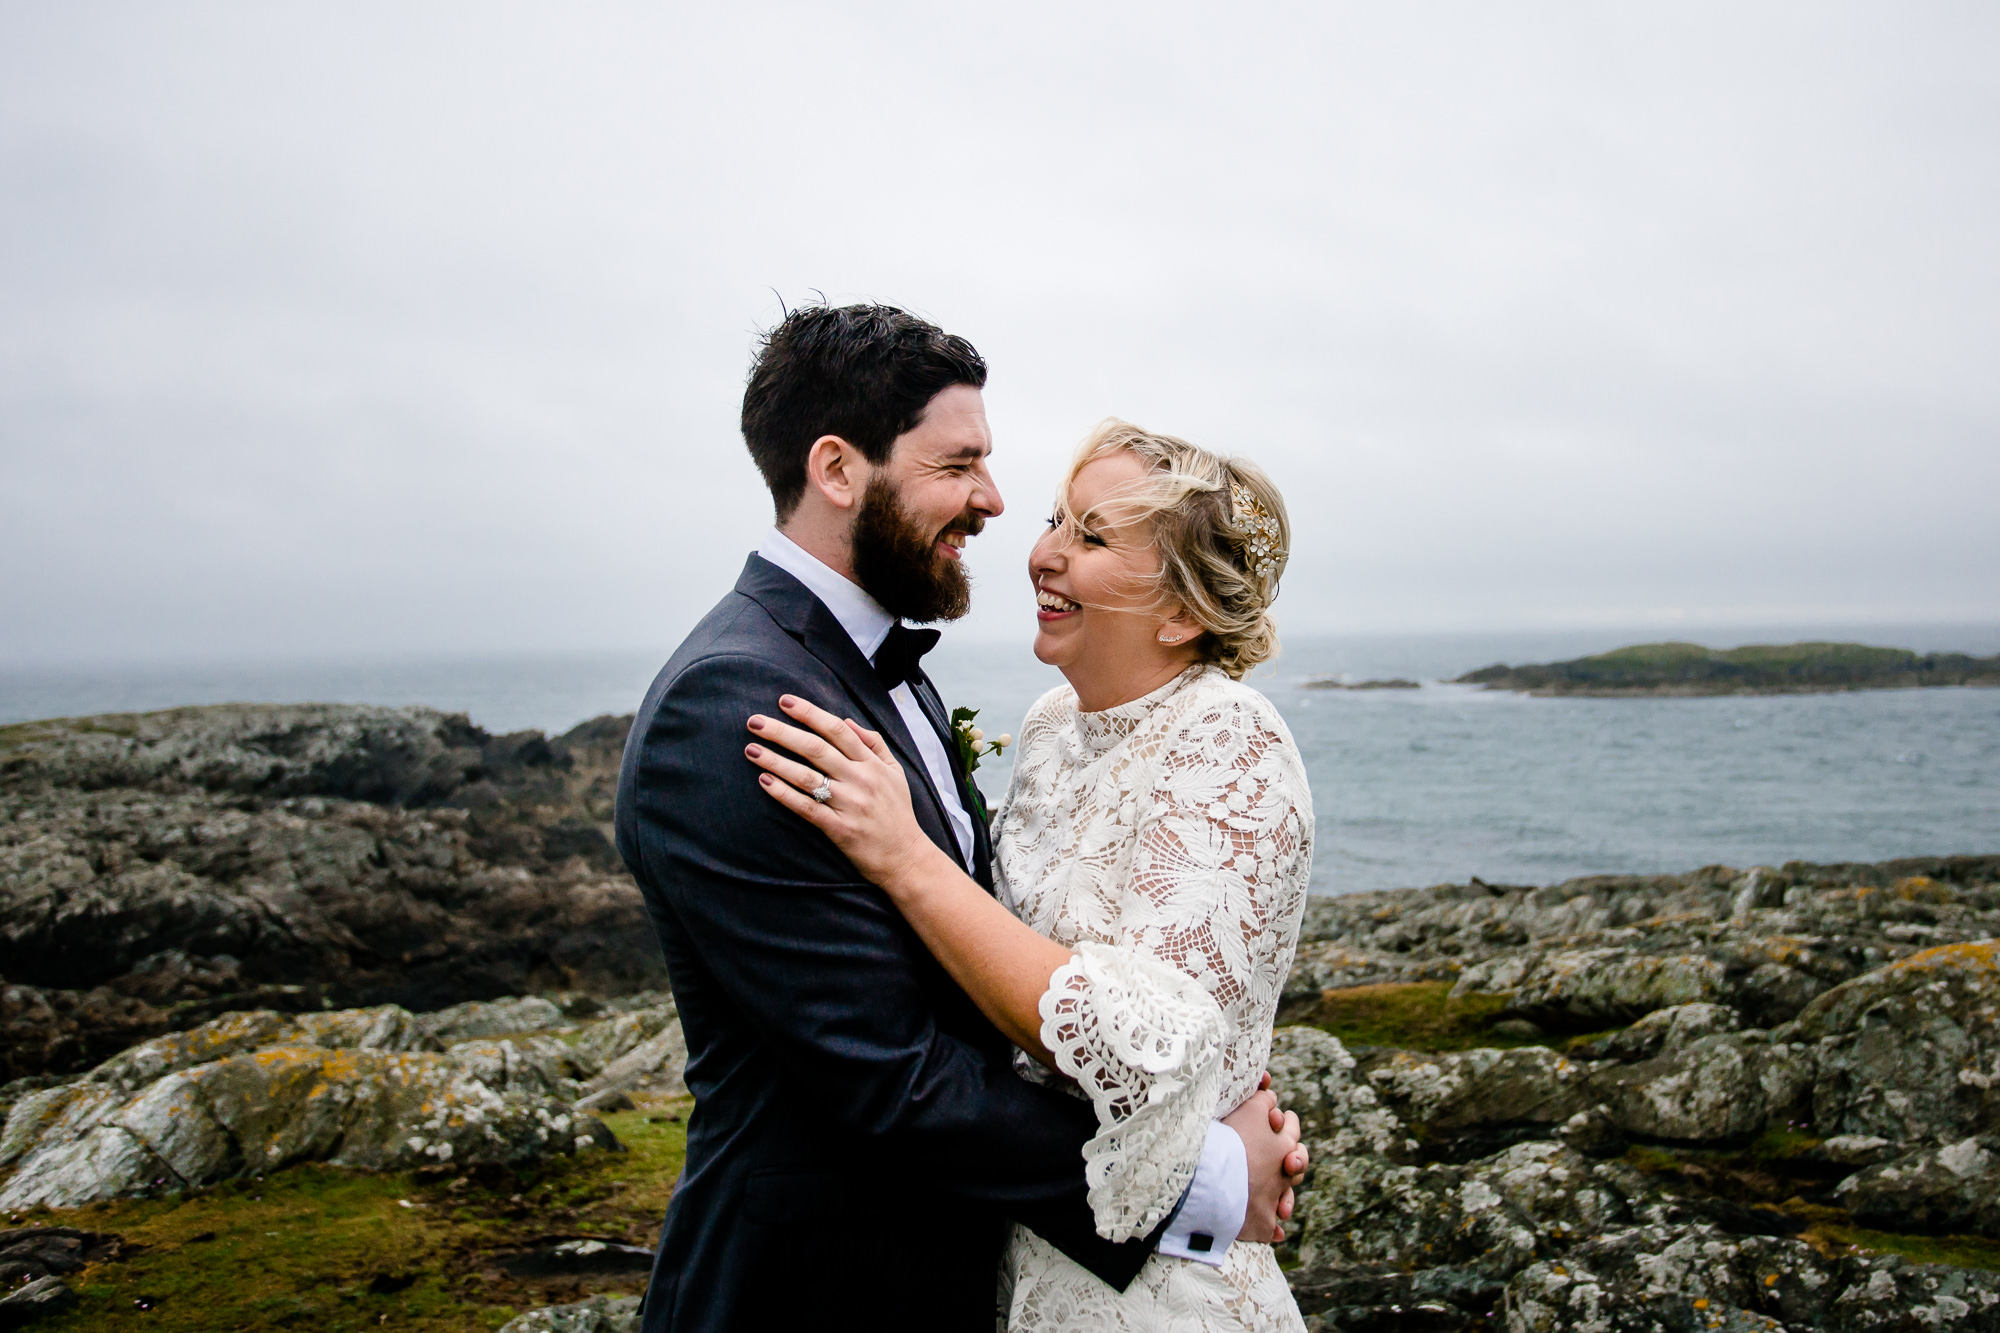 KATIE & SEAN - Rhoscolyn, Anglesey, Wales